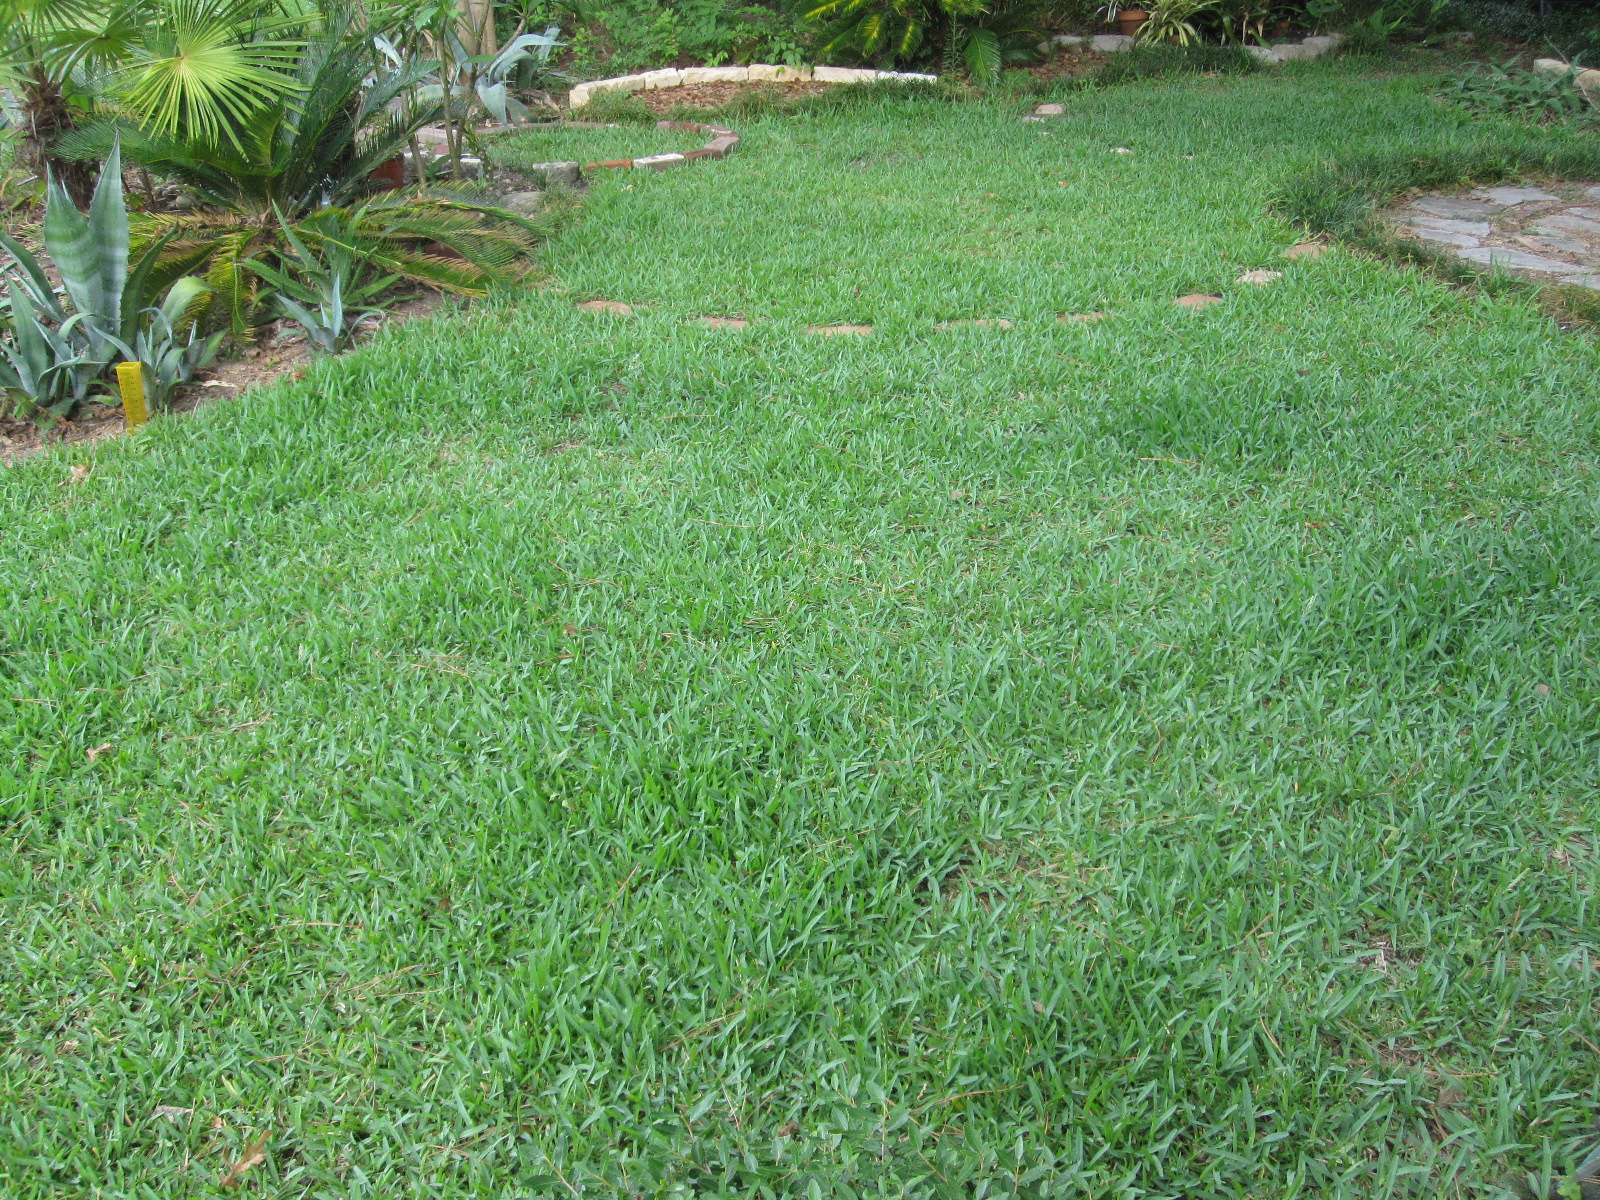 This Is The Lawn One Week After Sprinkling It With 3 Pounds Of Epsom Salts Salt Contains Magnesium And Considered An Organic Soil Amendment By